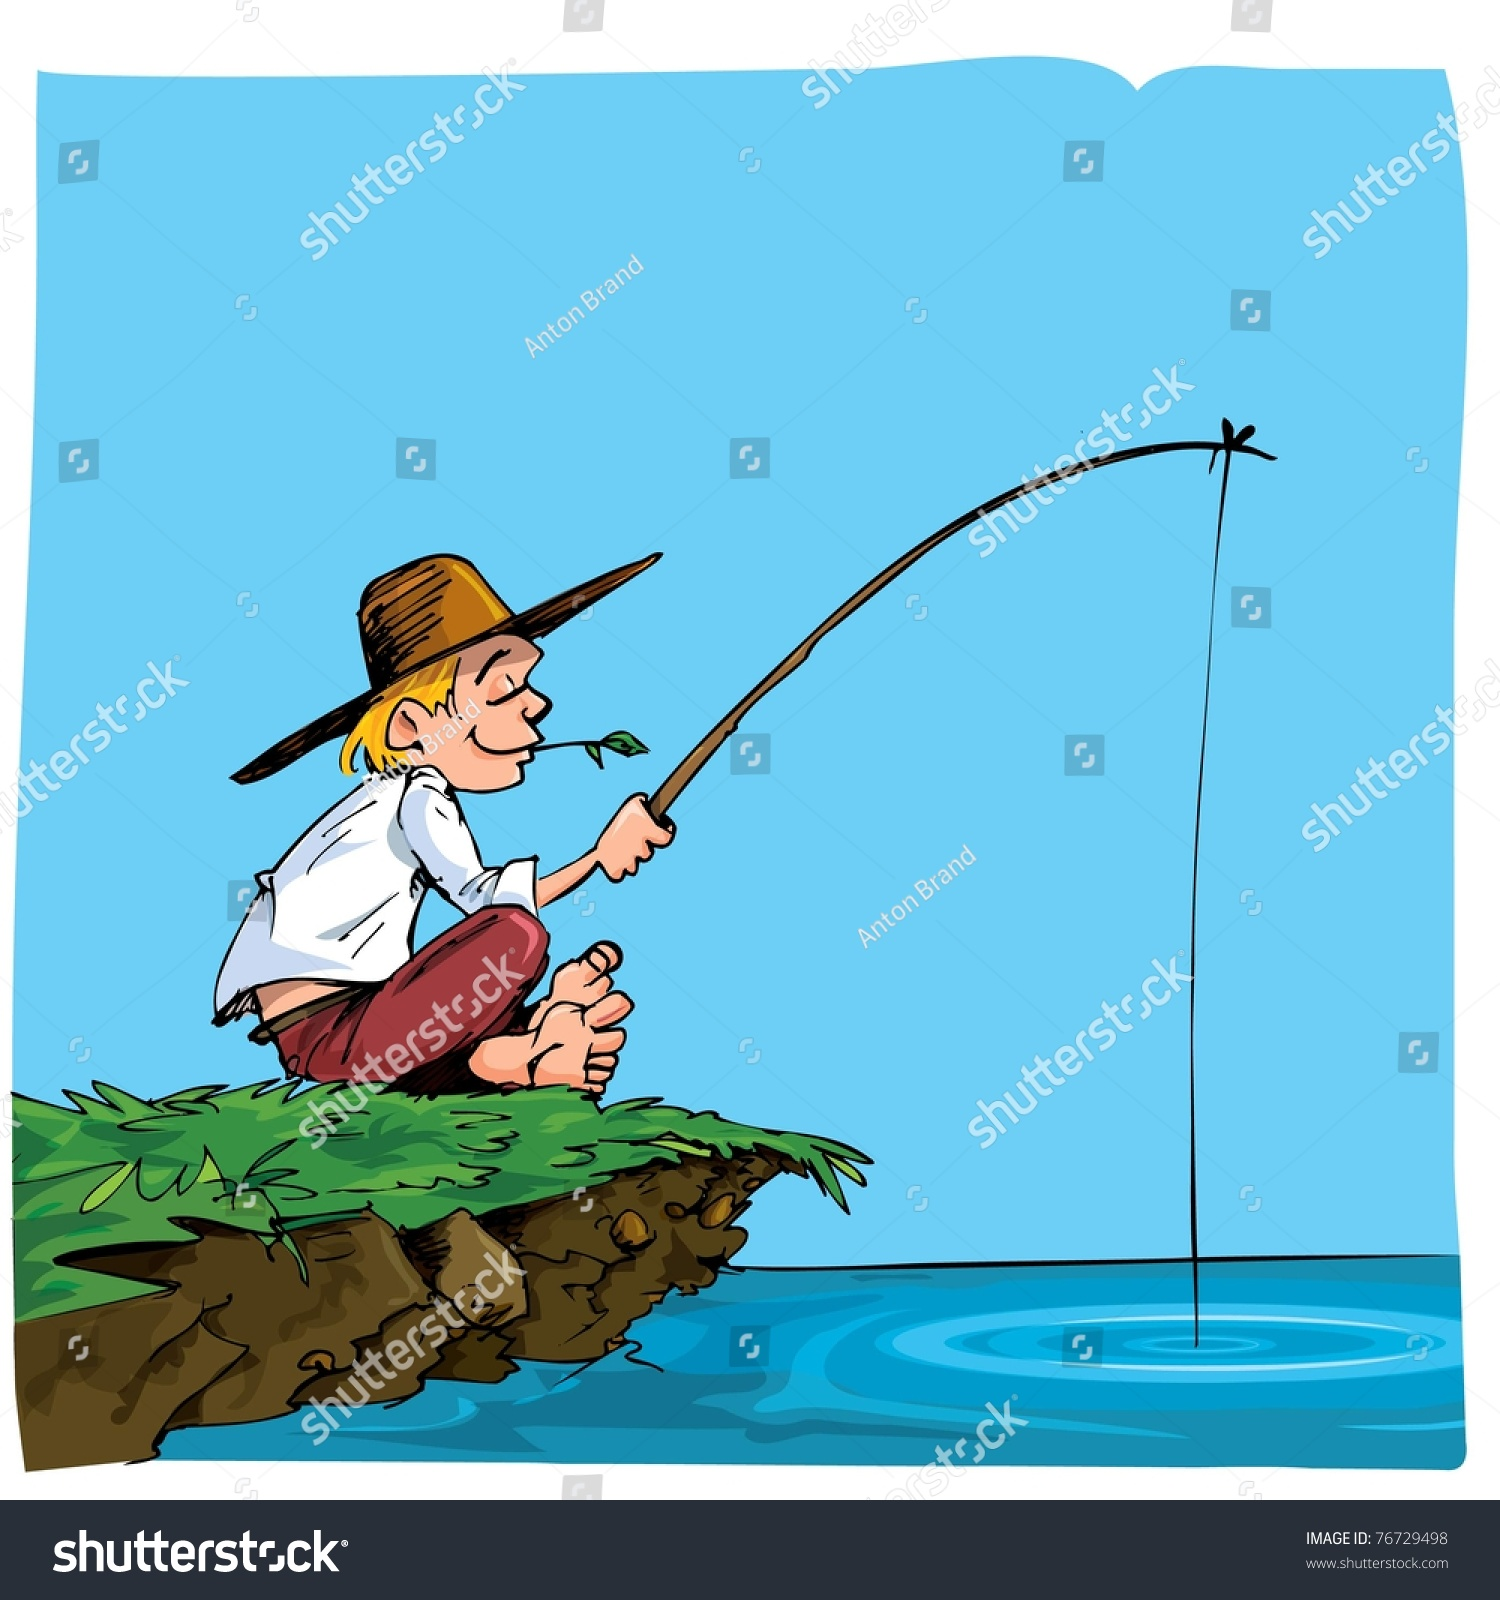 Download After three (3) hours struggling at sea the men were rescued by a fishing boat from st. Cartoon Of A Boy Fishing. He Is On A Riverbank Stock 1svg.com